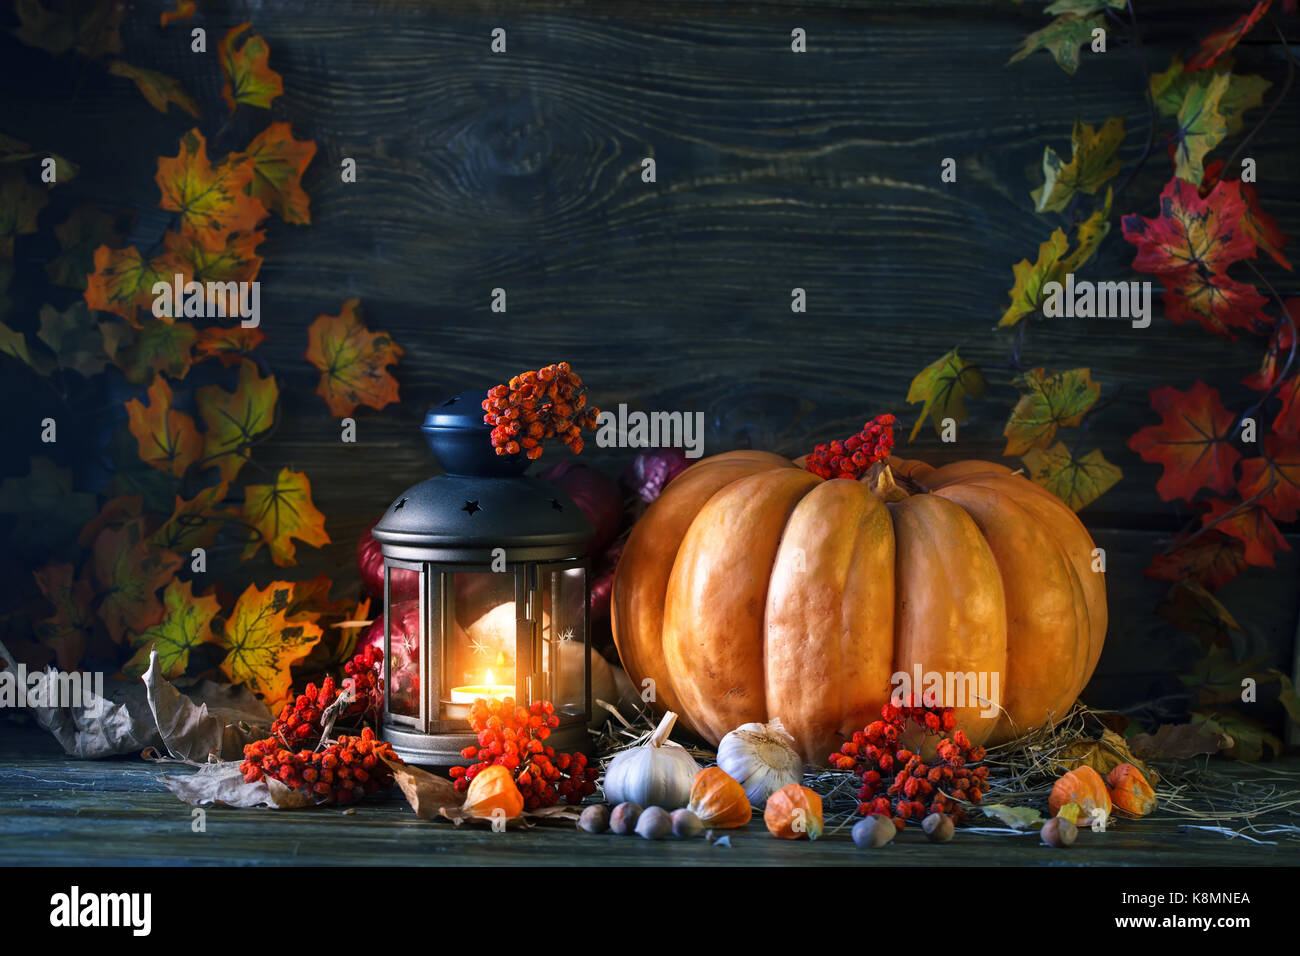 The wooden table decorated with vegetables, pumpkins and autumn leaves. Autumn background. Schastlivy von Thanksgiving - Stock Image